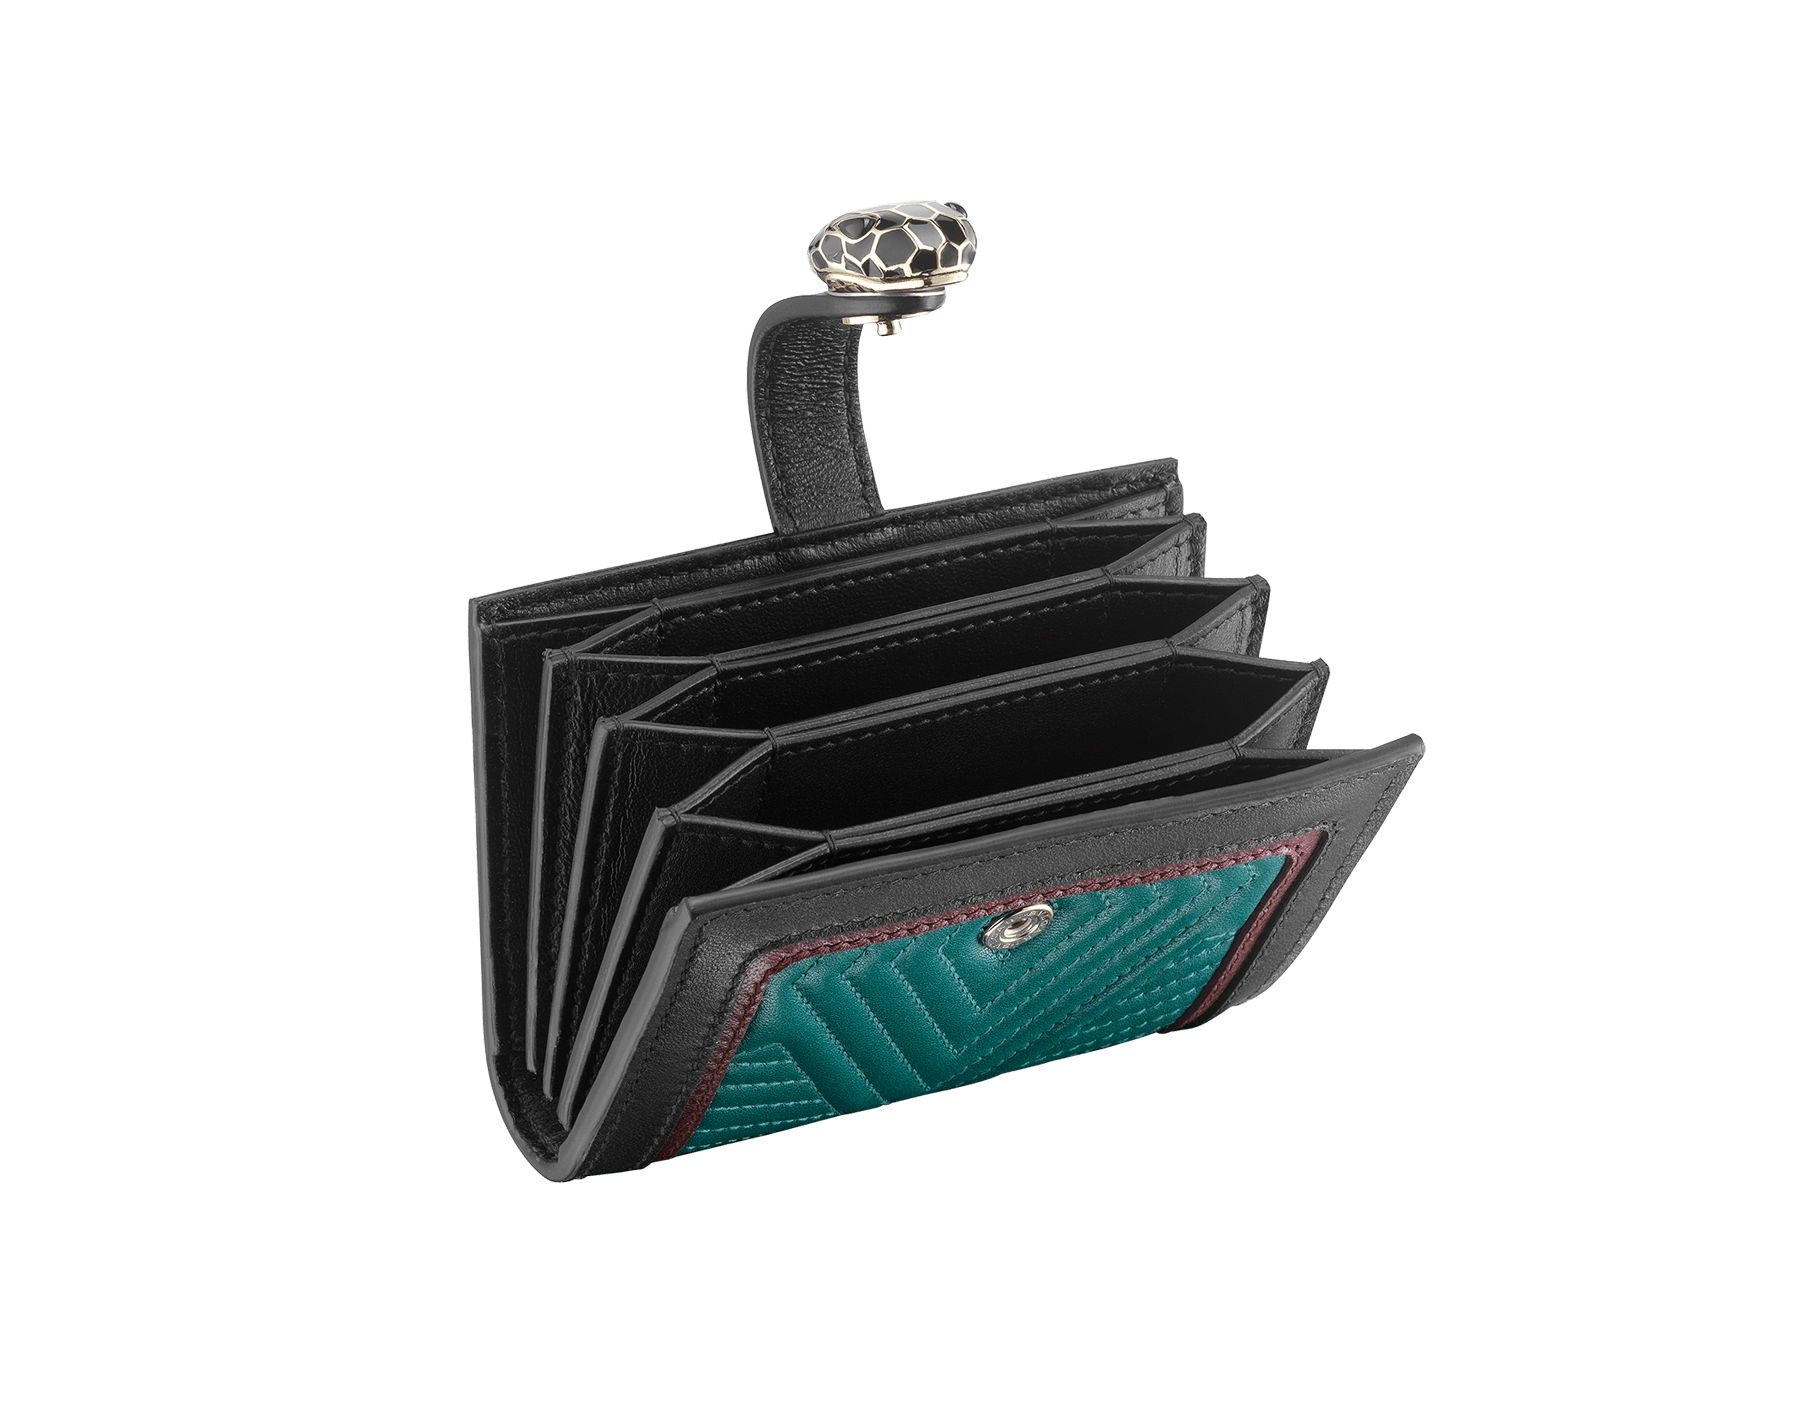 Serpenti Diamond Blast compact credit card holder in deep jade matelassè nappa leather and roman garnet and black calf leather. Iconic snakehead closure in black and deep jade enamel, with black enamel eyes. 288195 image 2